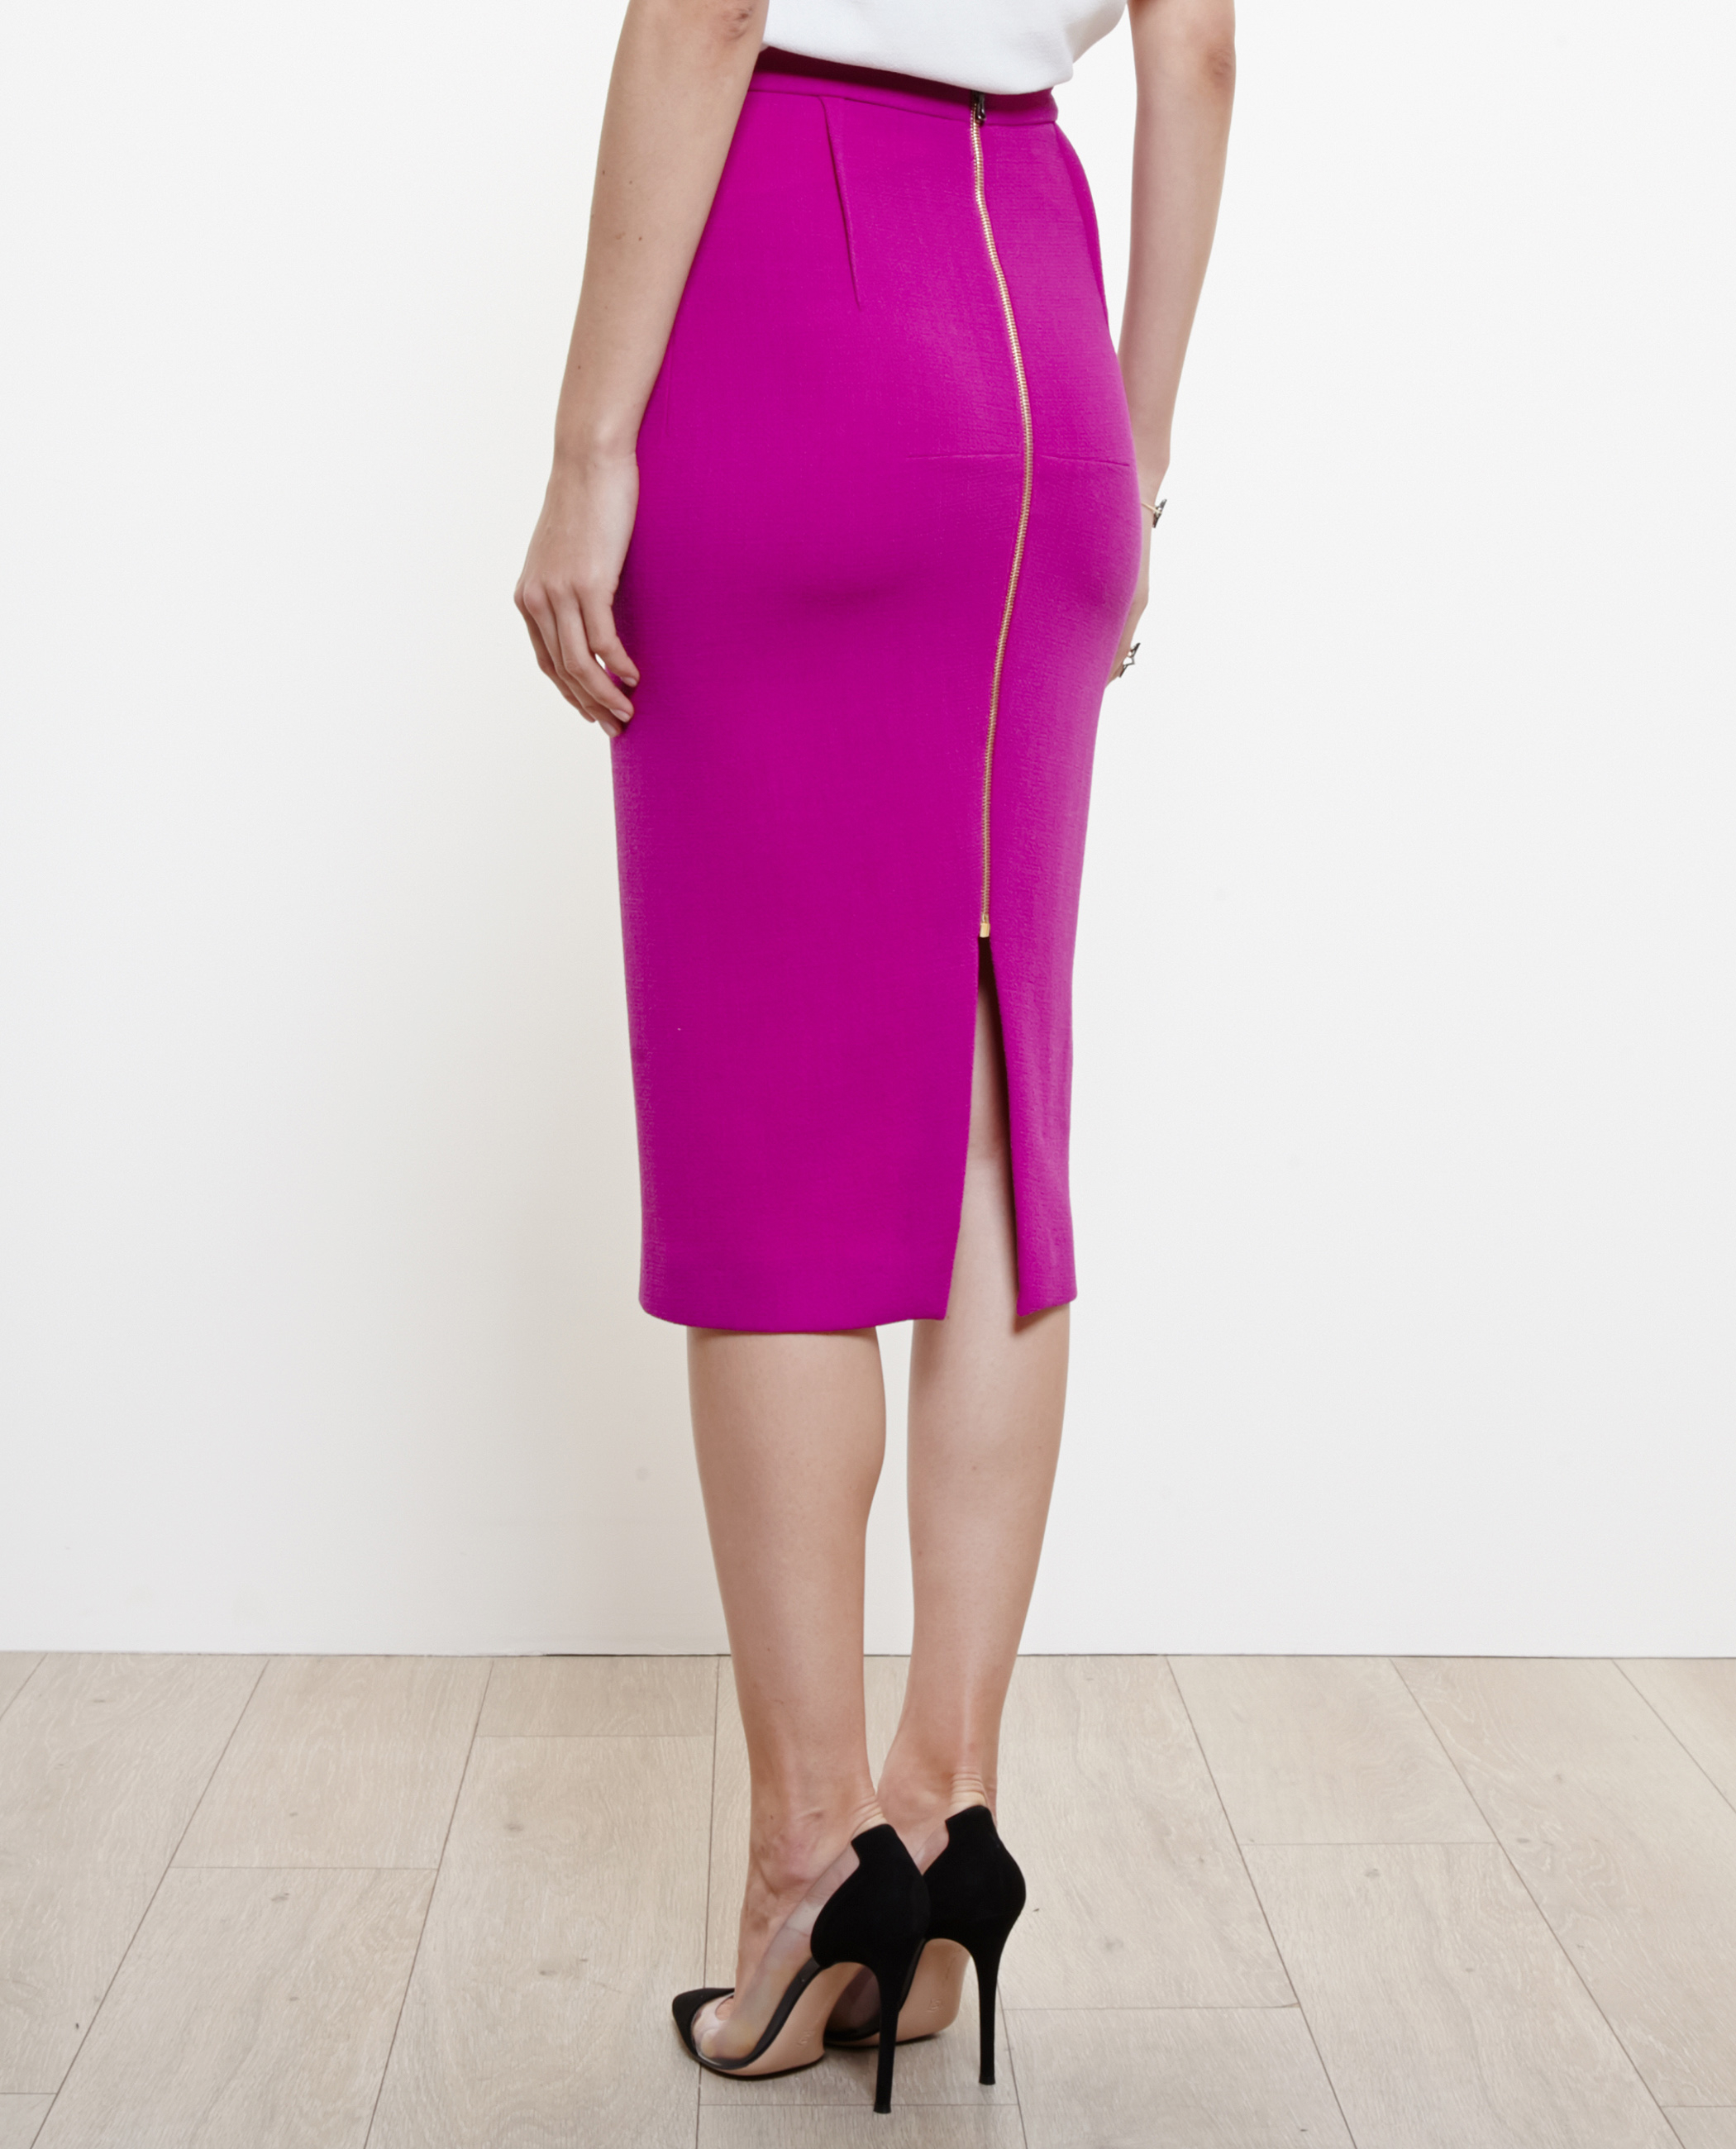 cbce10e3b8 Roland Mouret Arreton Wool Crepe Pencil Skirt in Purple - Lyst